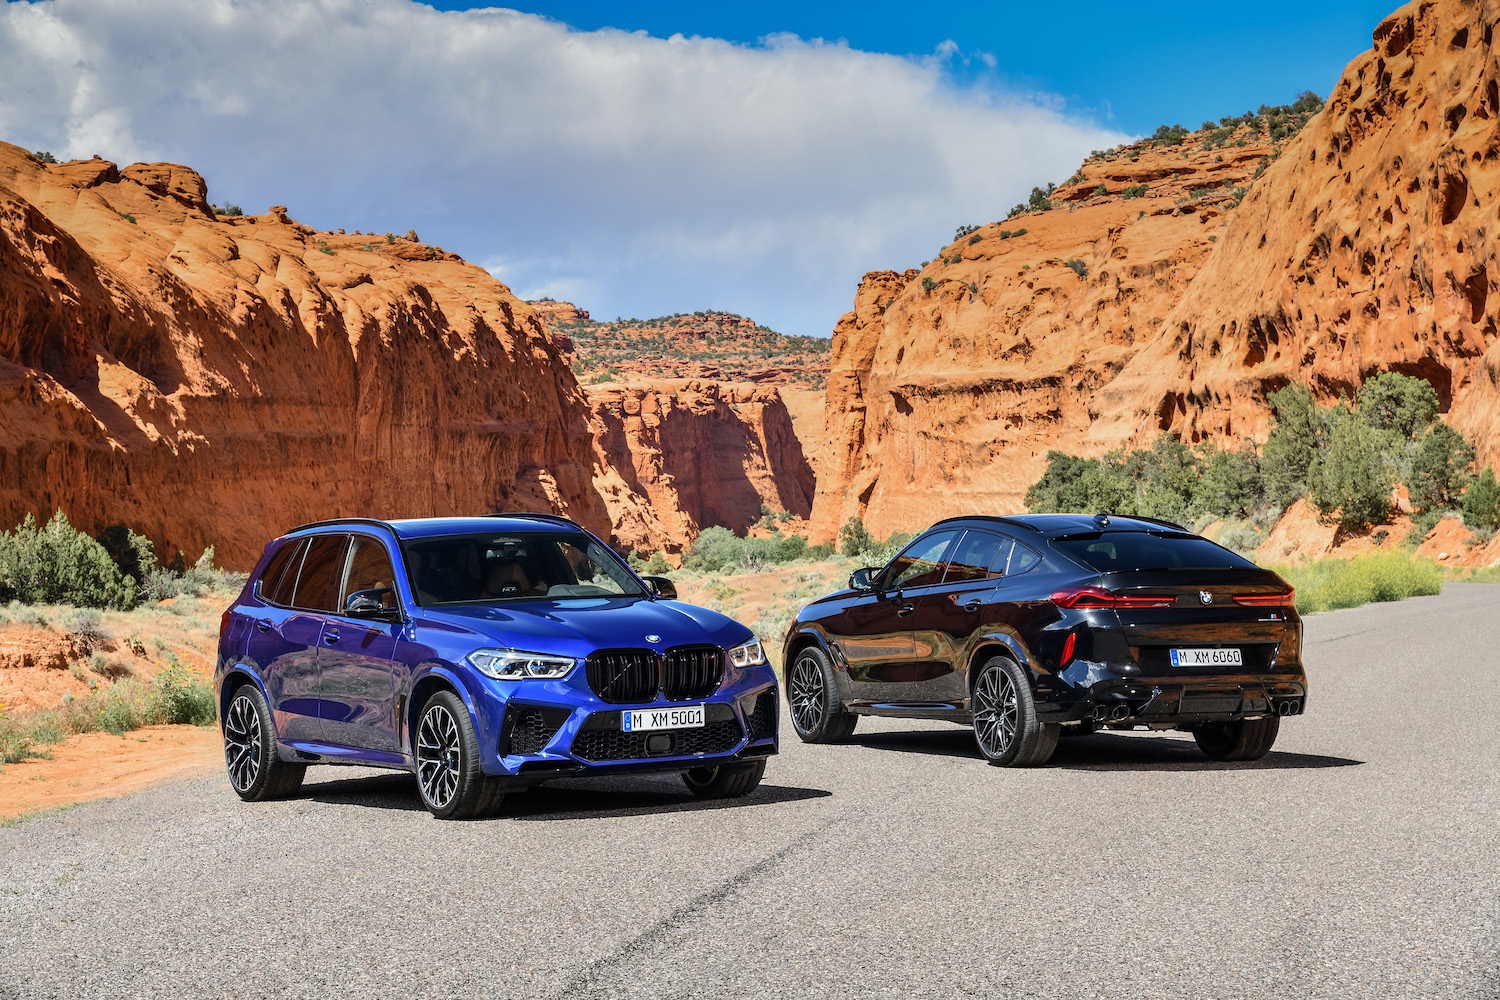 BMW stuffs the beefy M5 engine into the X5 and X6 M thumbnail